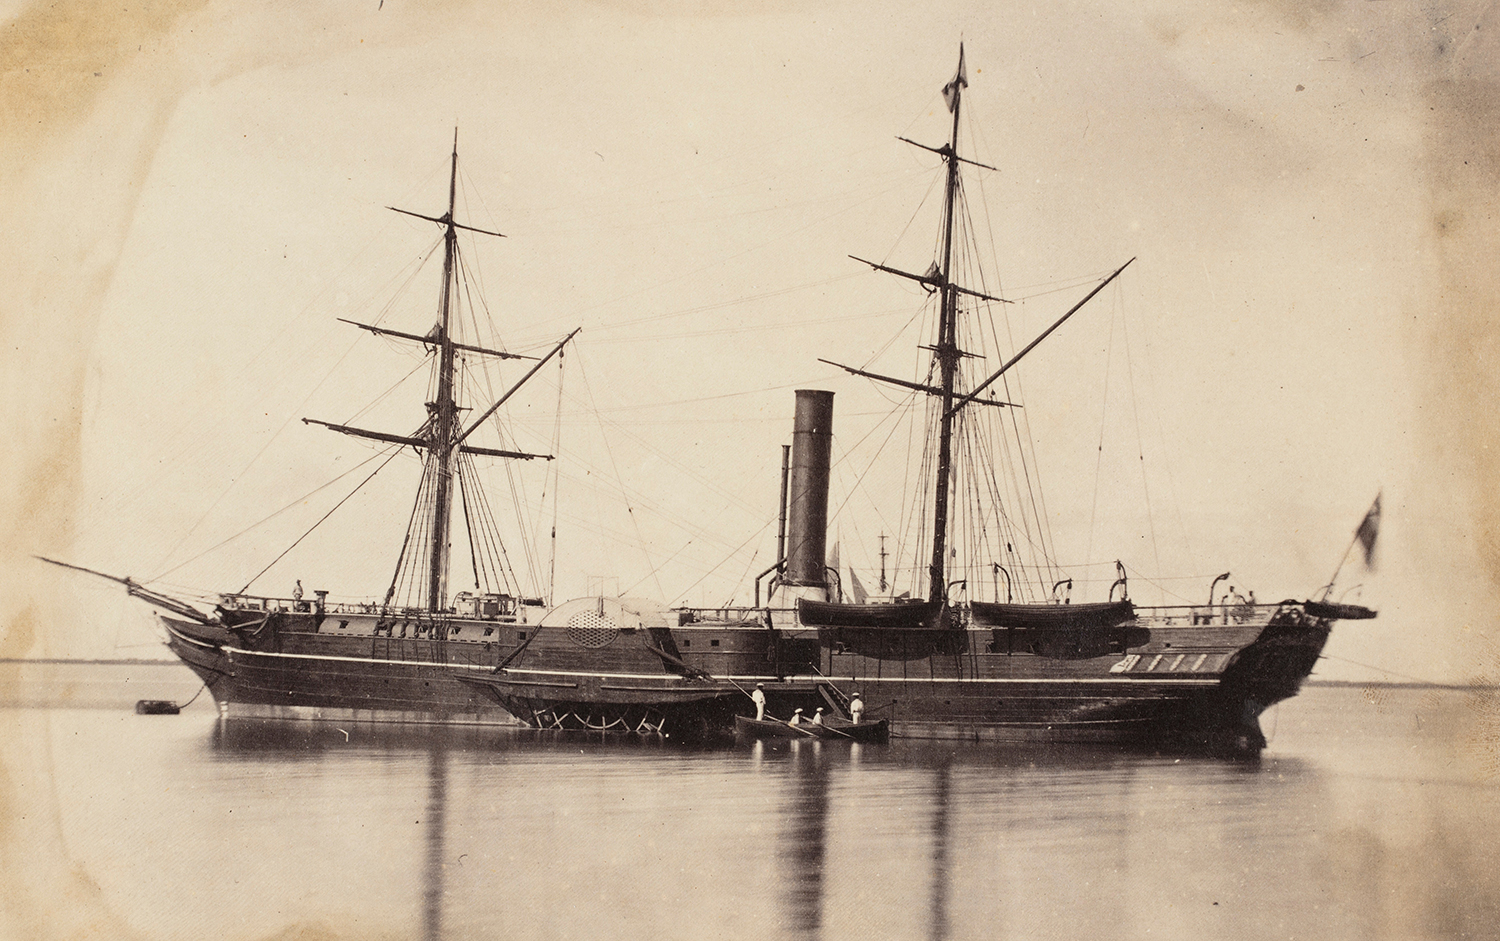 Paddle Steamer, [possibly HMS Torch], c. 1858